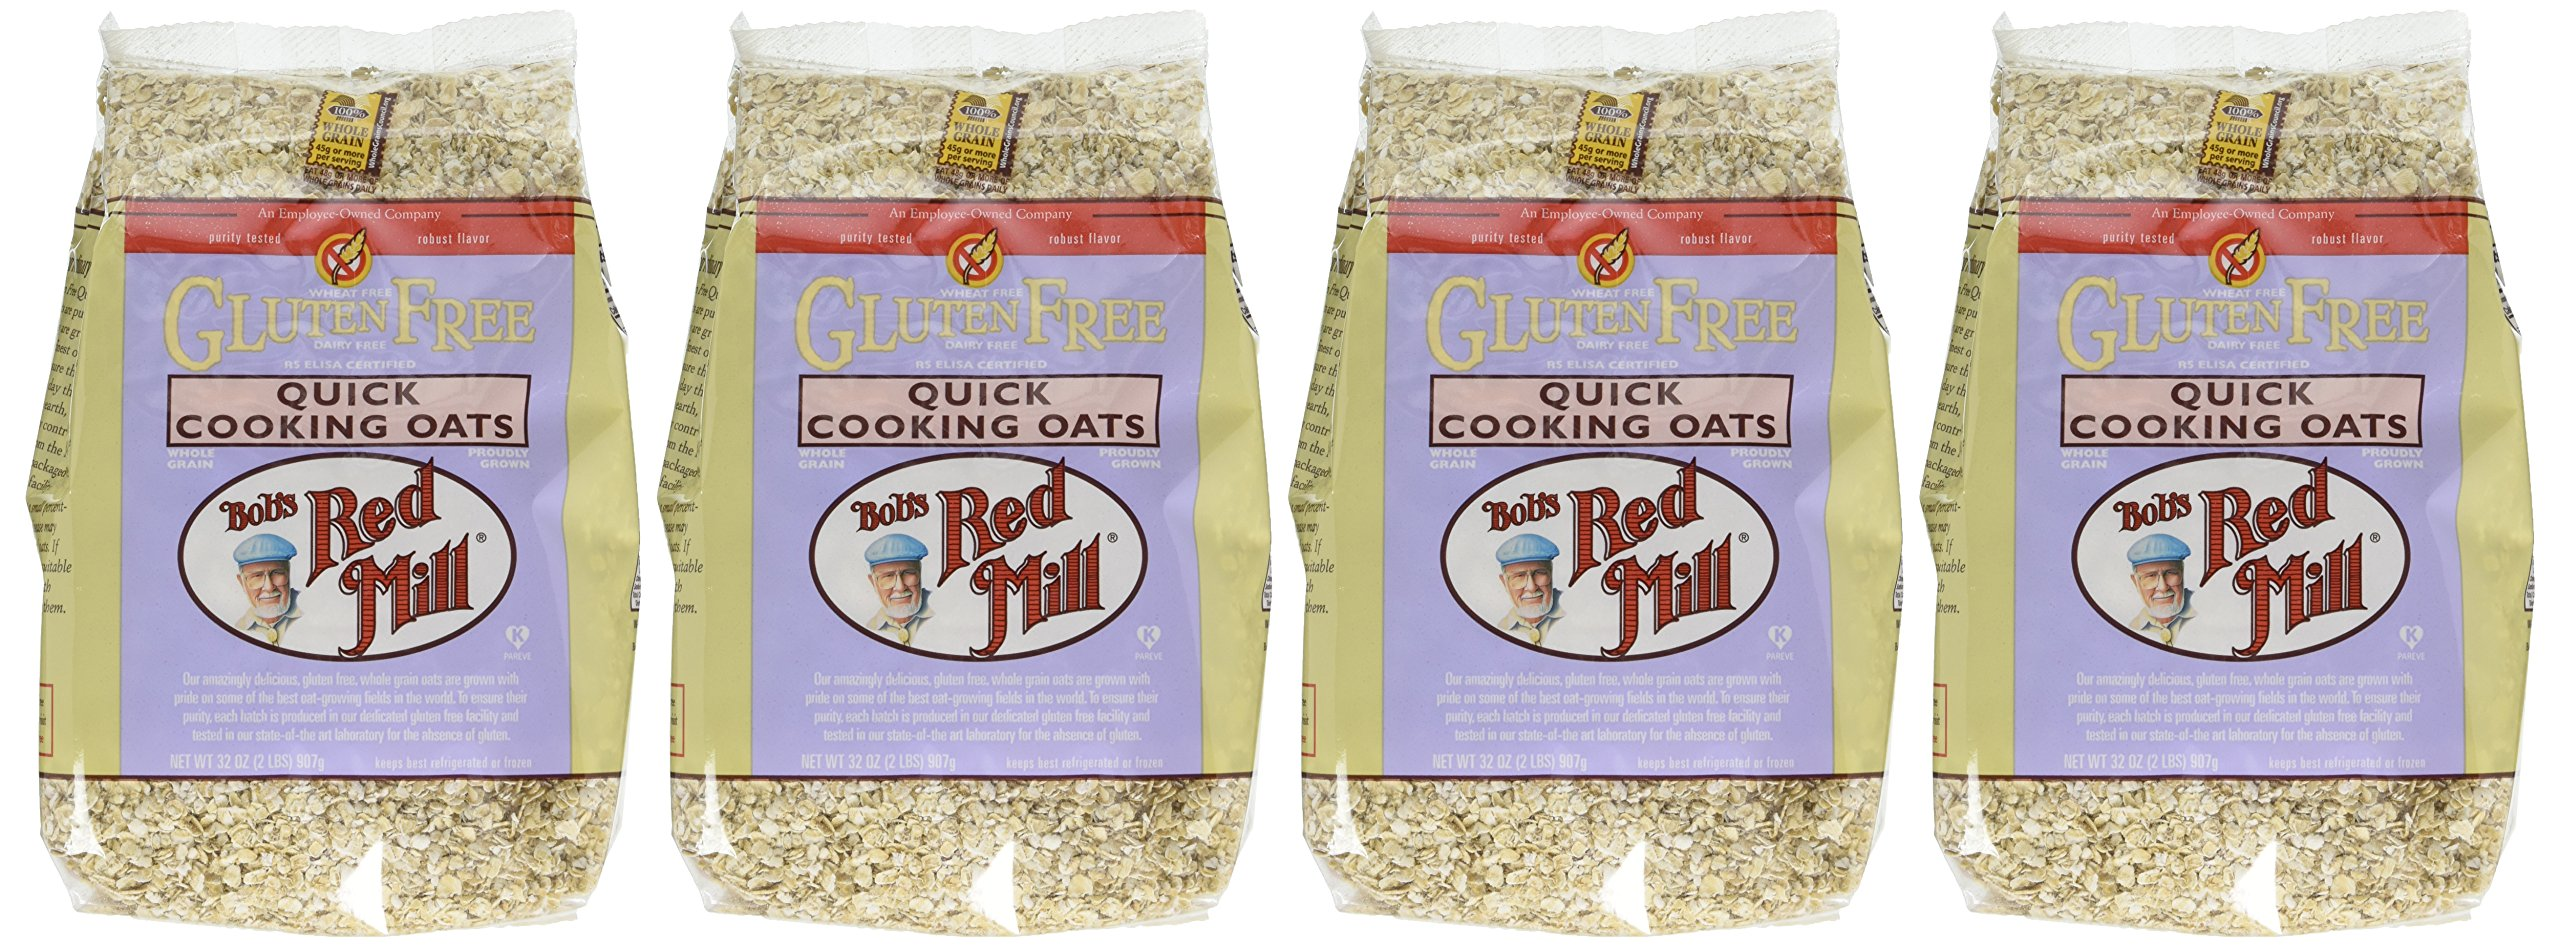 Bob's Red Mill Gluten Free Organic Quick Cooking Rolled Oats, 32 Oz (4 Pack) by Bob's Red Mill (Image #2)